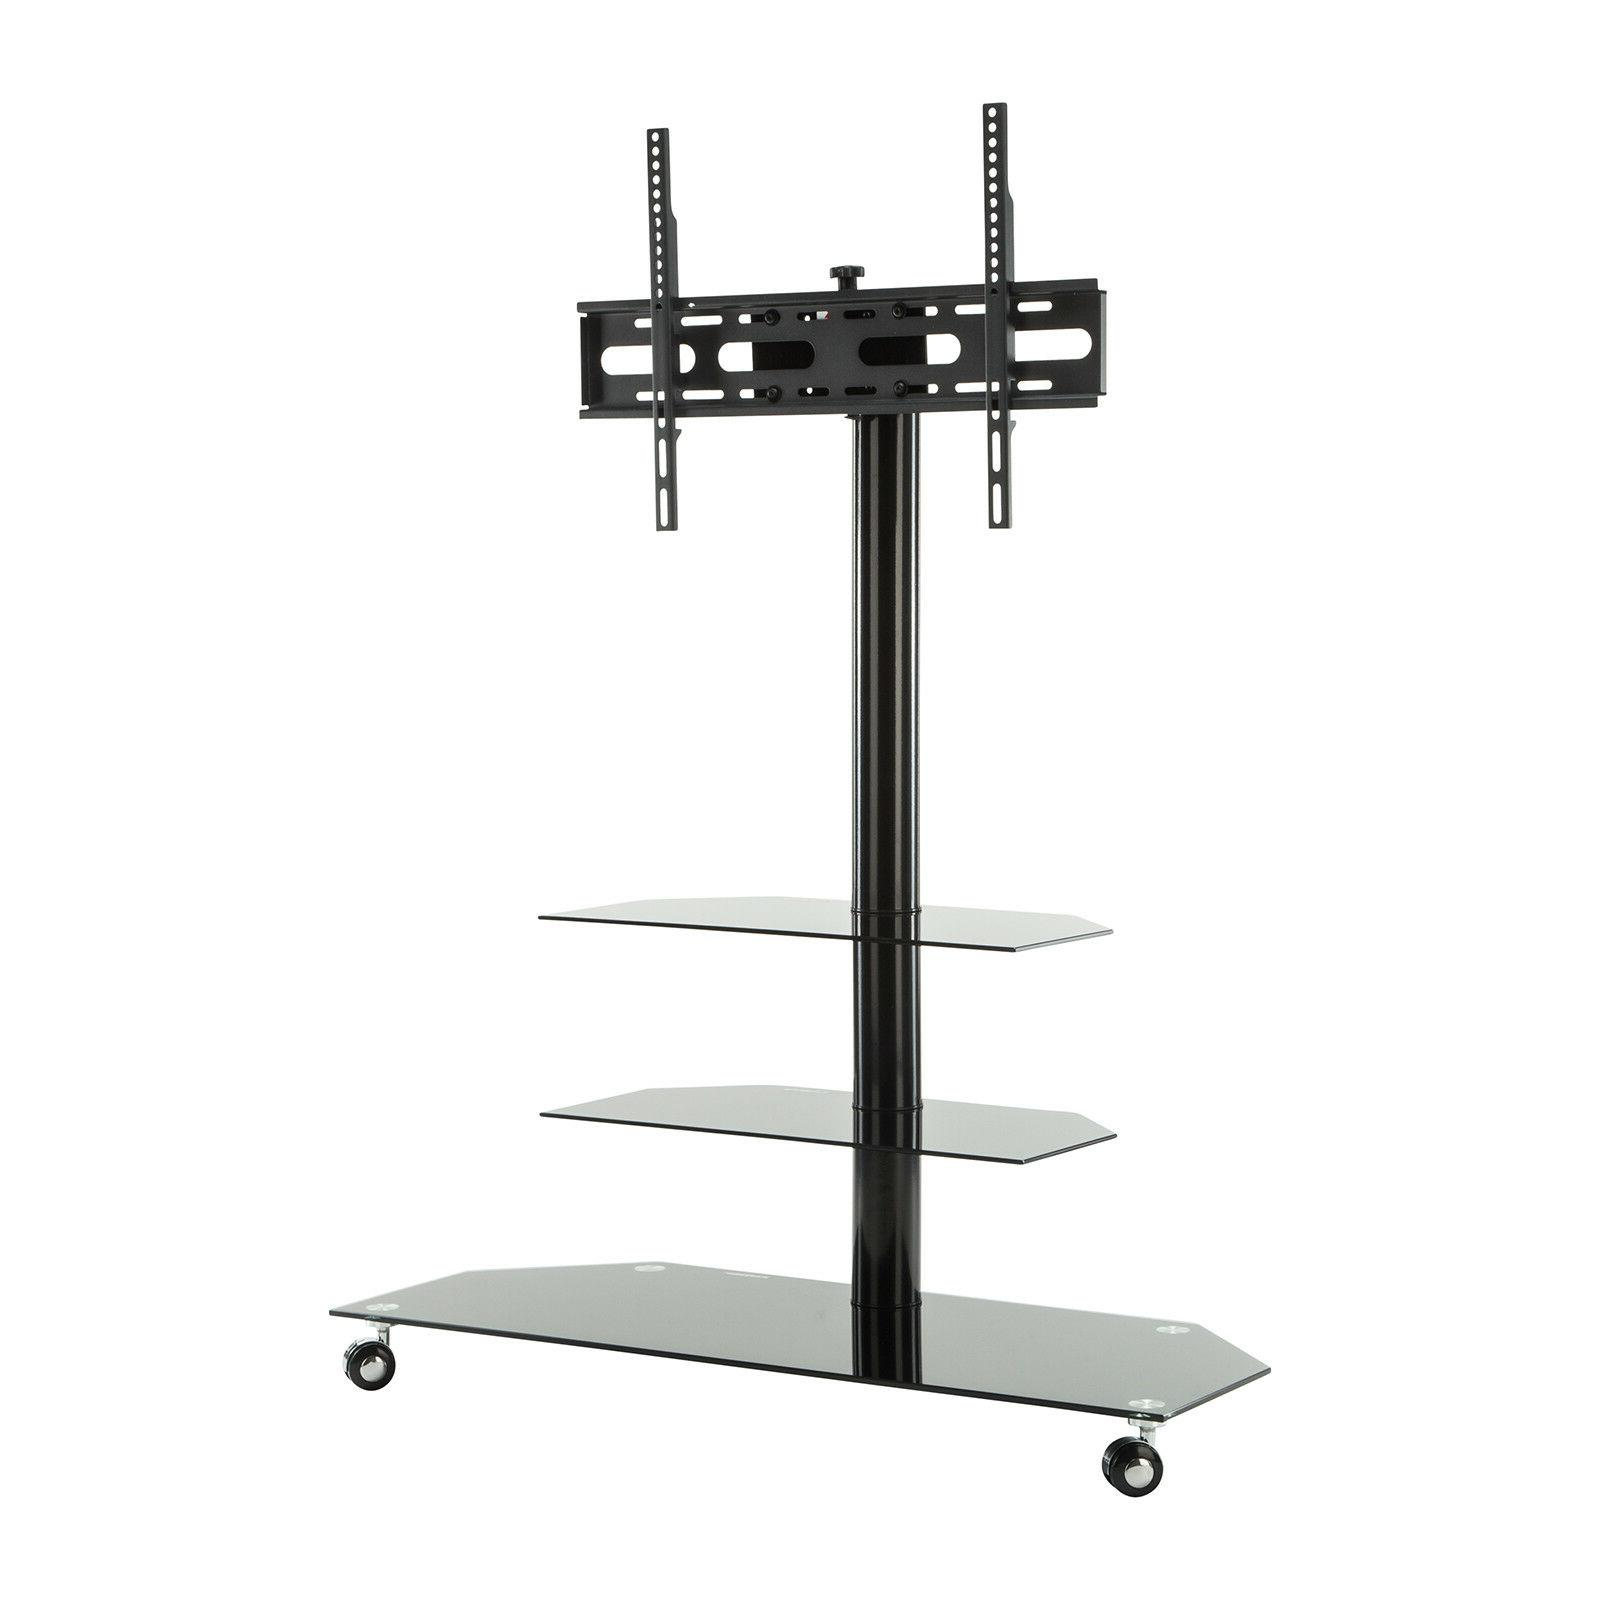 Floor TV Stand Mount For 32 42 50 55-inch Flat Screen TV's M